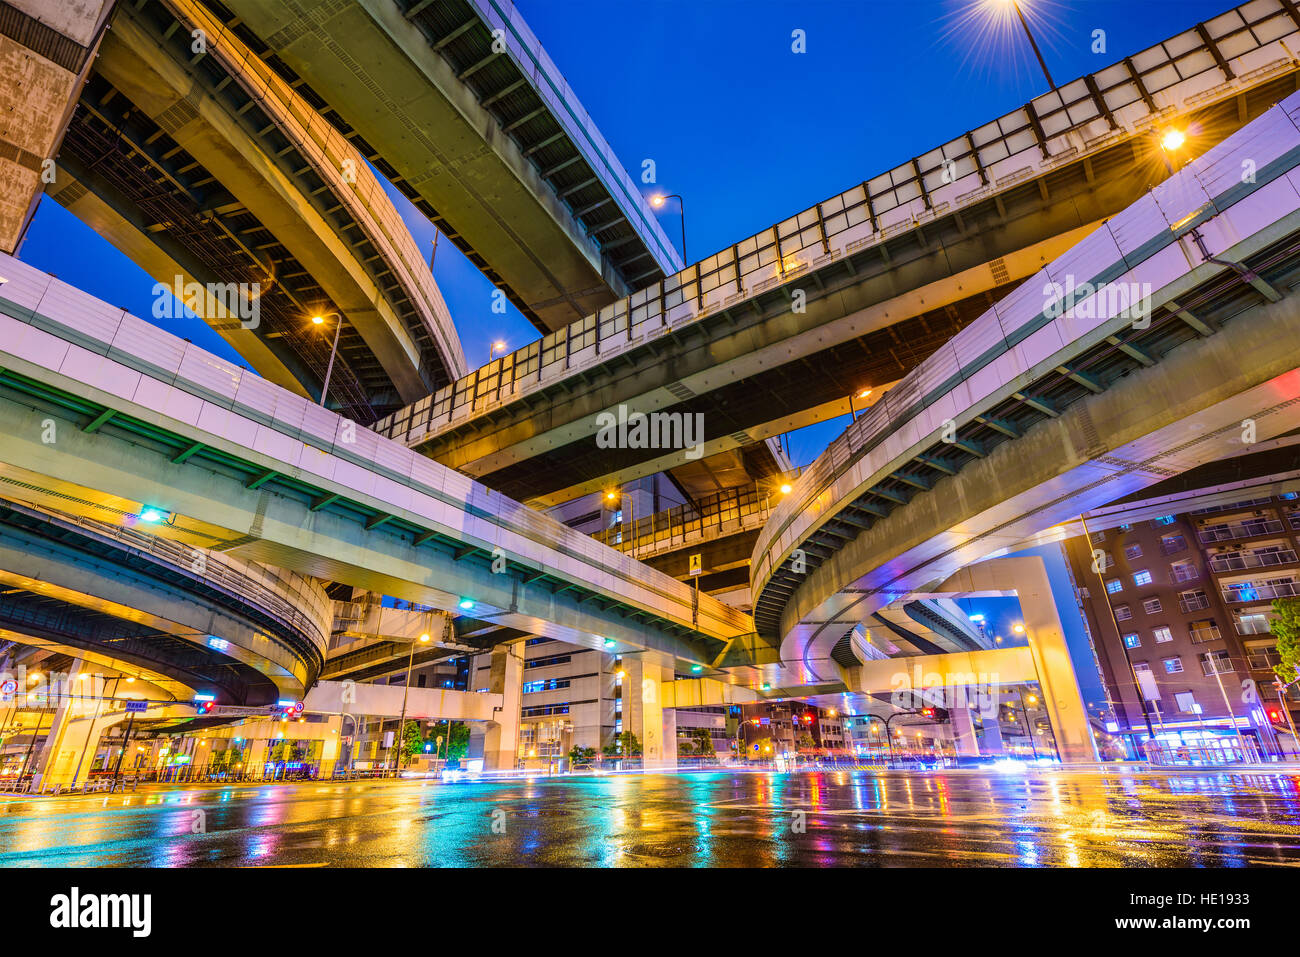 Elevated Highways and Roads in Osaka, Japan. - Stock Image